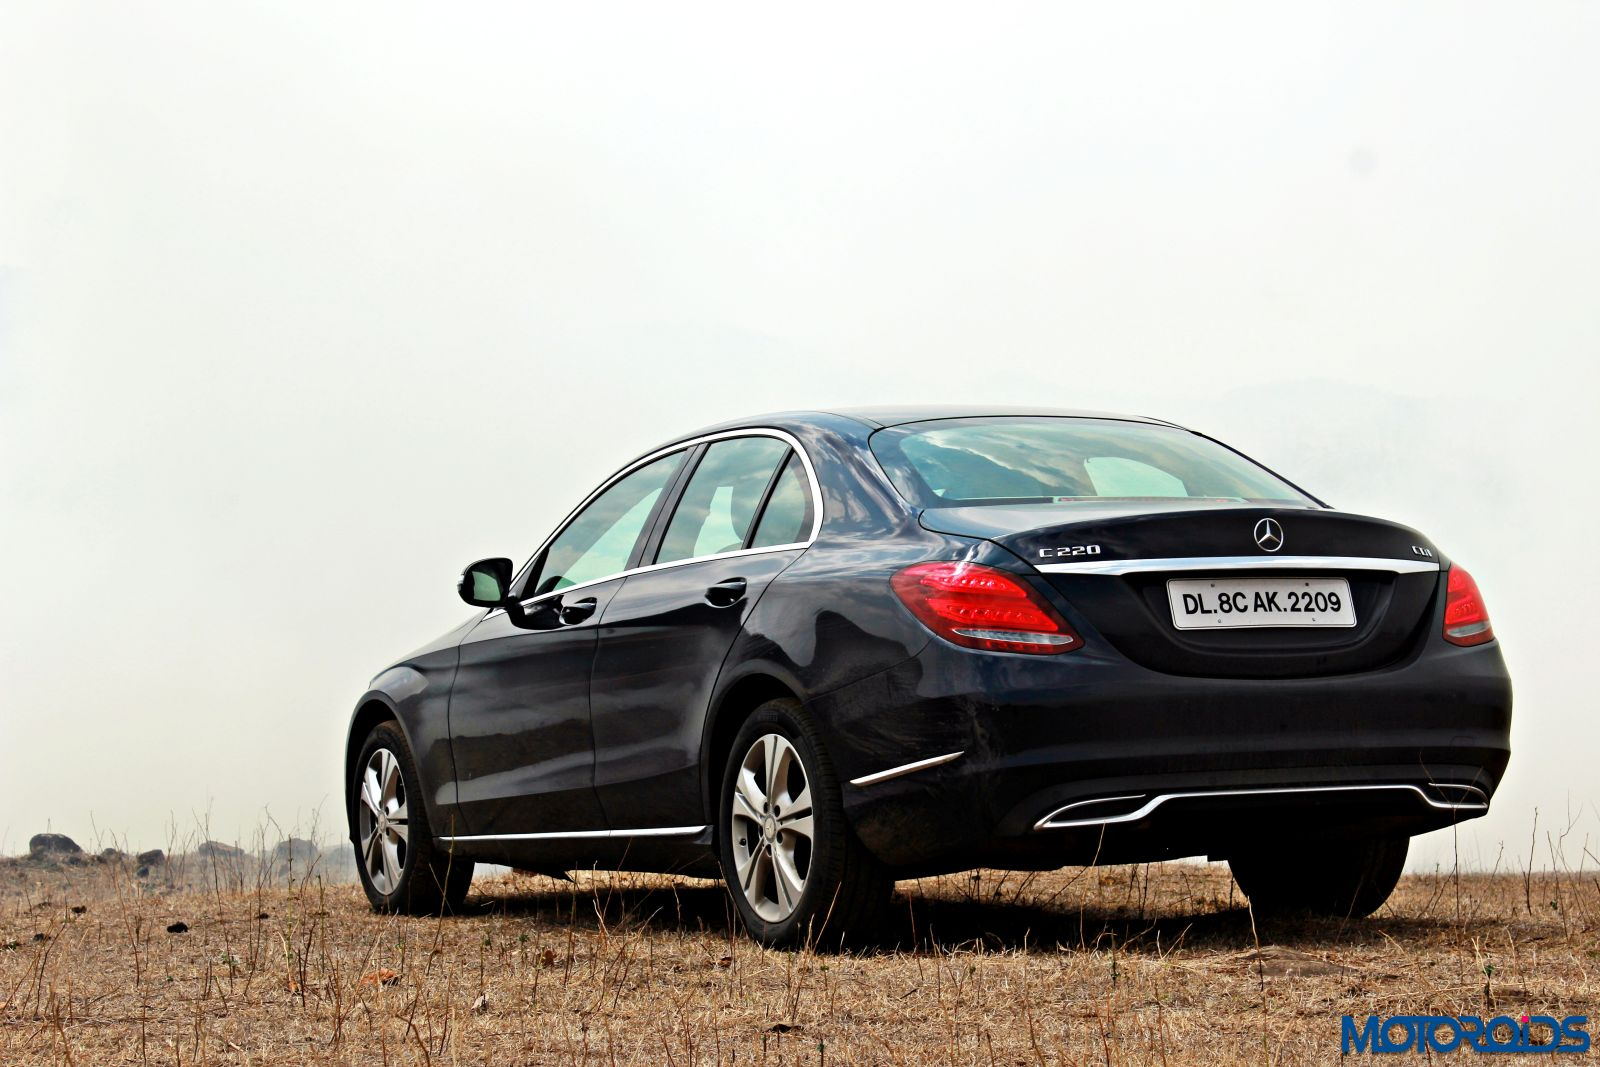 Mercedes benz india launches locally assembled 2015 c220 for Mercedes benz c class price in india